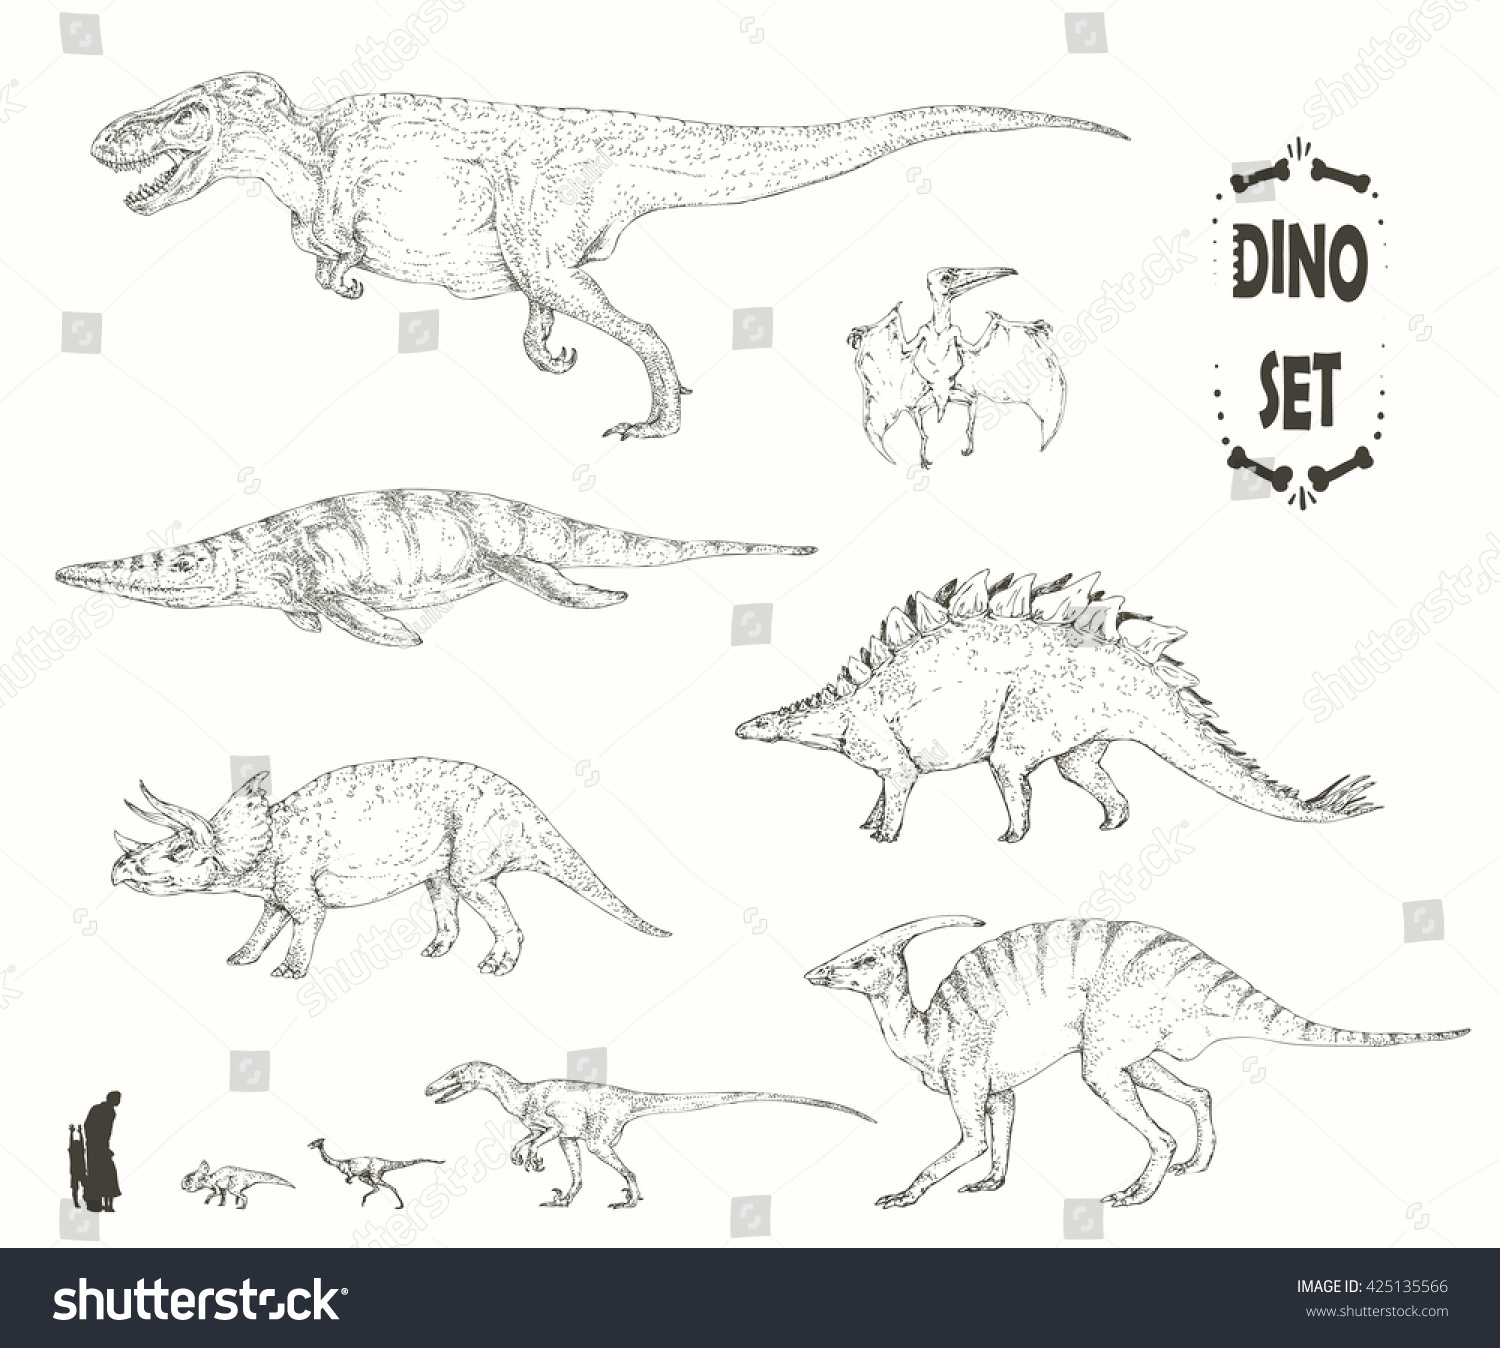 Uncategorized Sketches Of Dinosaurs set realistic sketches dinosaurs fossils hand stock vector of and drawn illustration silhouettes of